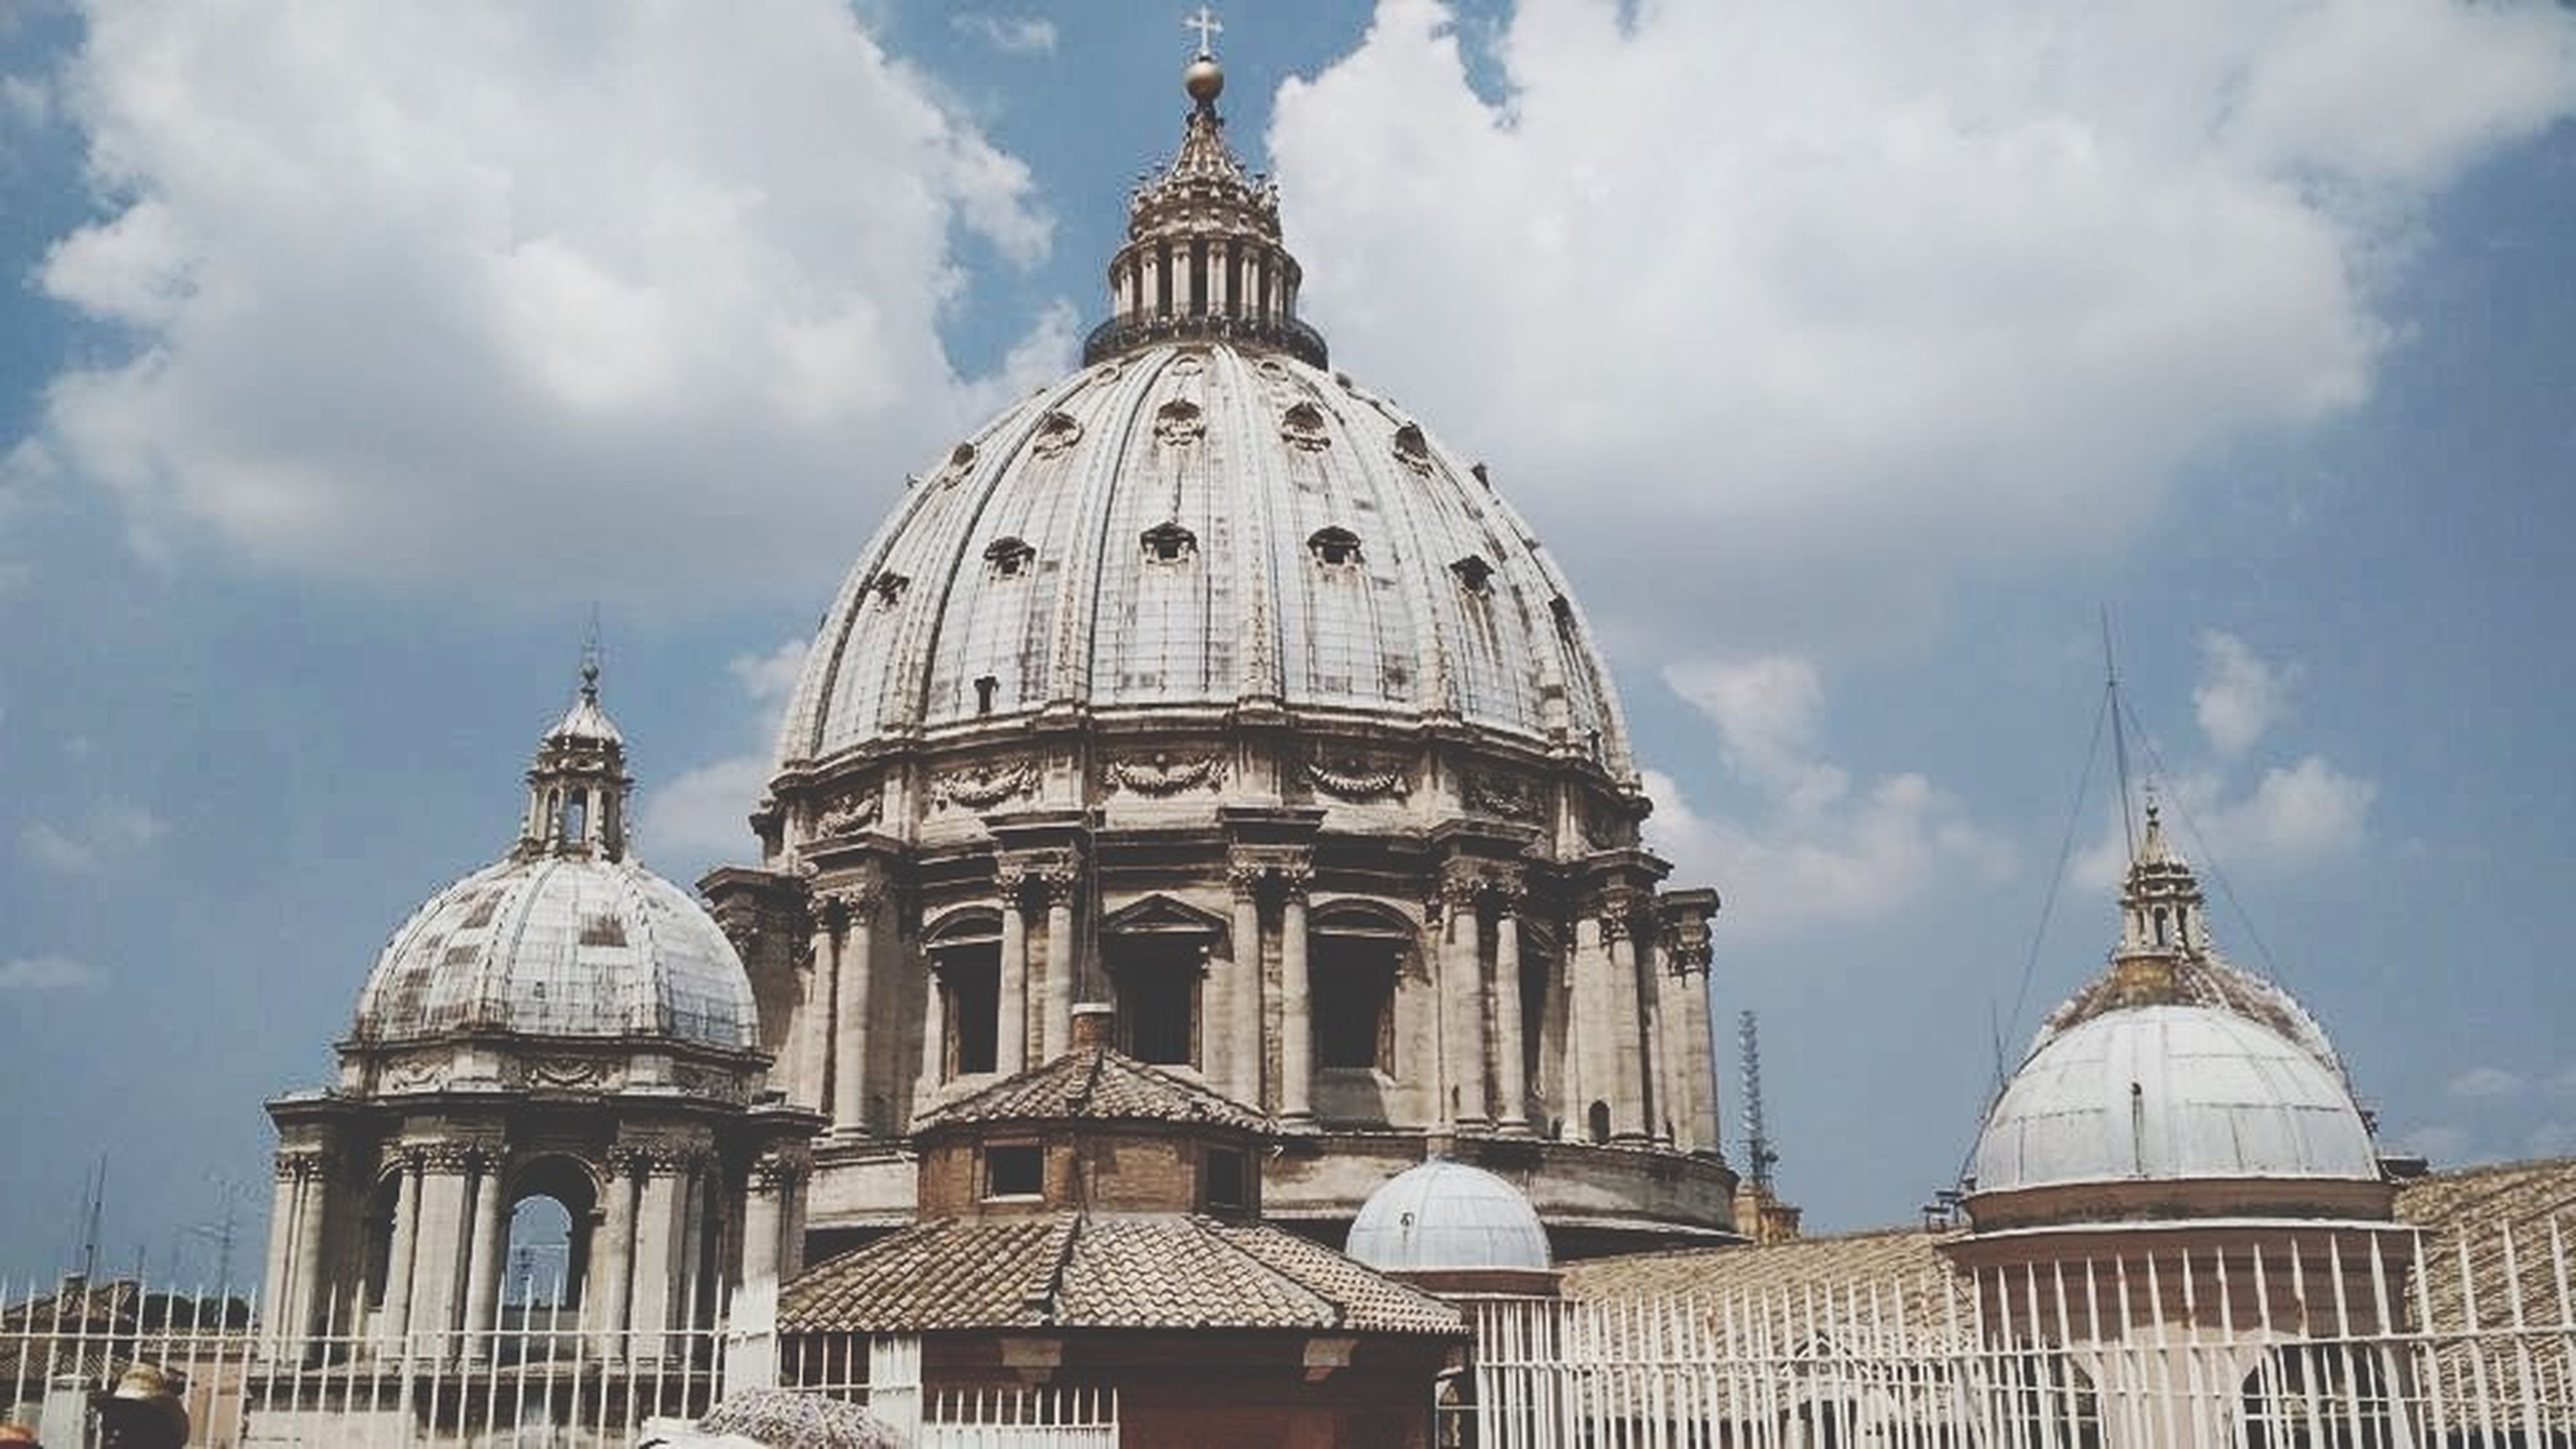 architecture, built structure, dome, building exterior, place of worship, sky, religion, famous place, spirituality, travel destinations, low angle view, tourism, cloud - sky, travel, international landmark, cathedral, church, capital cities, cloud